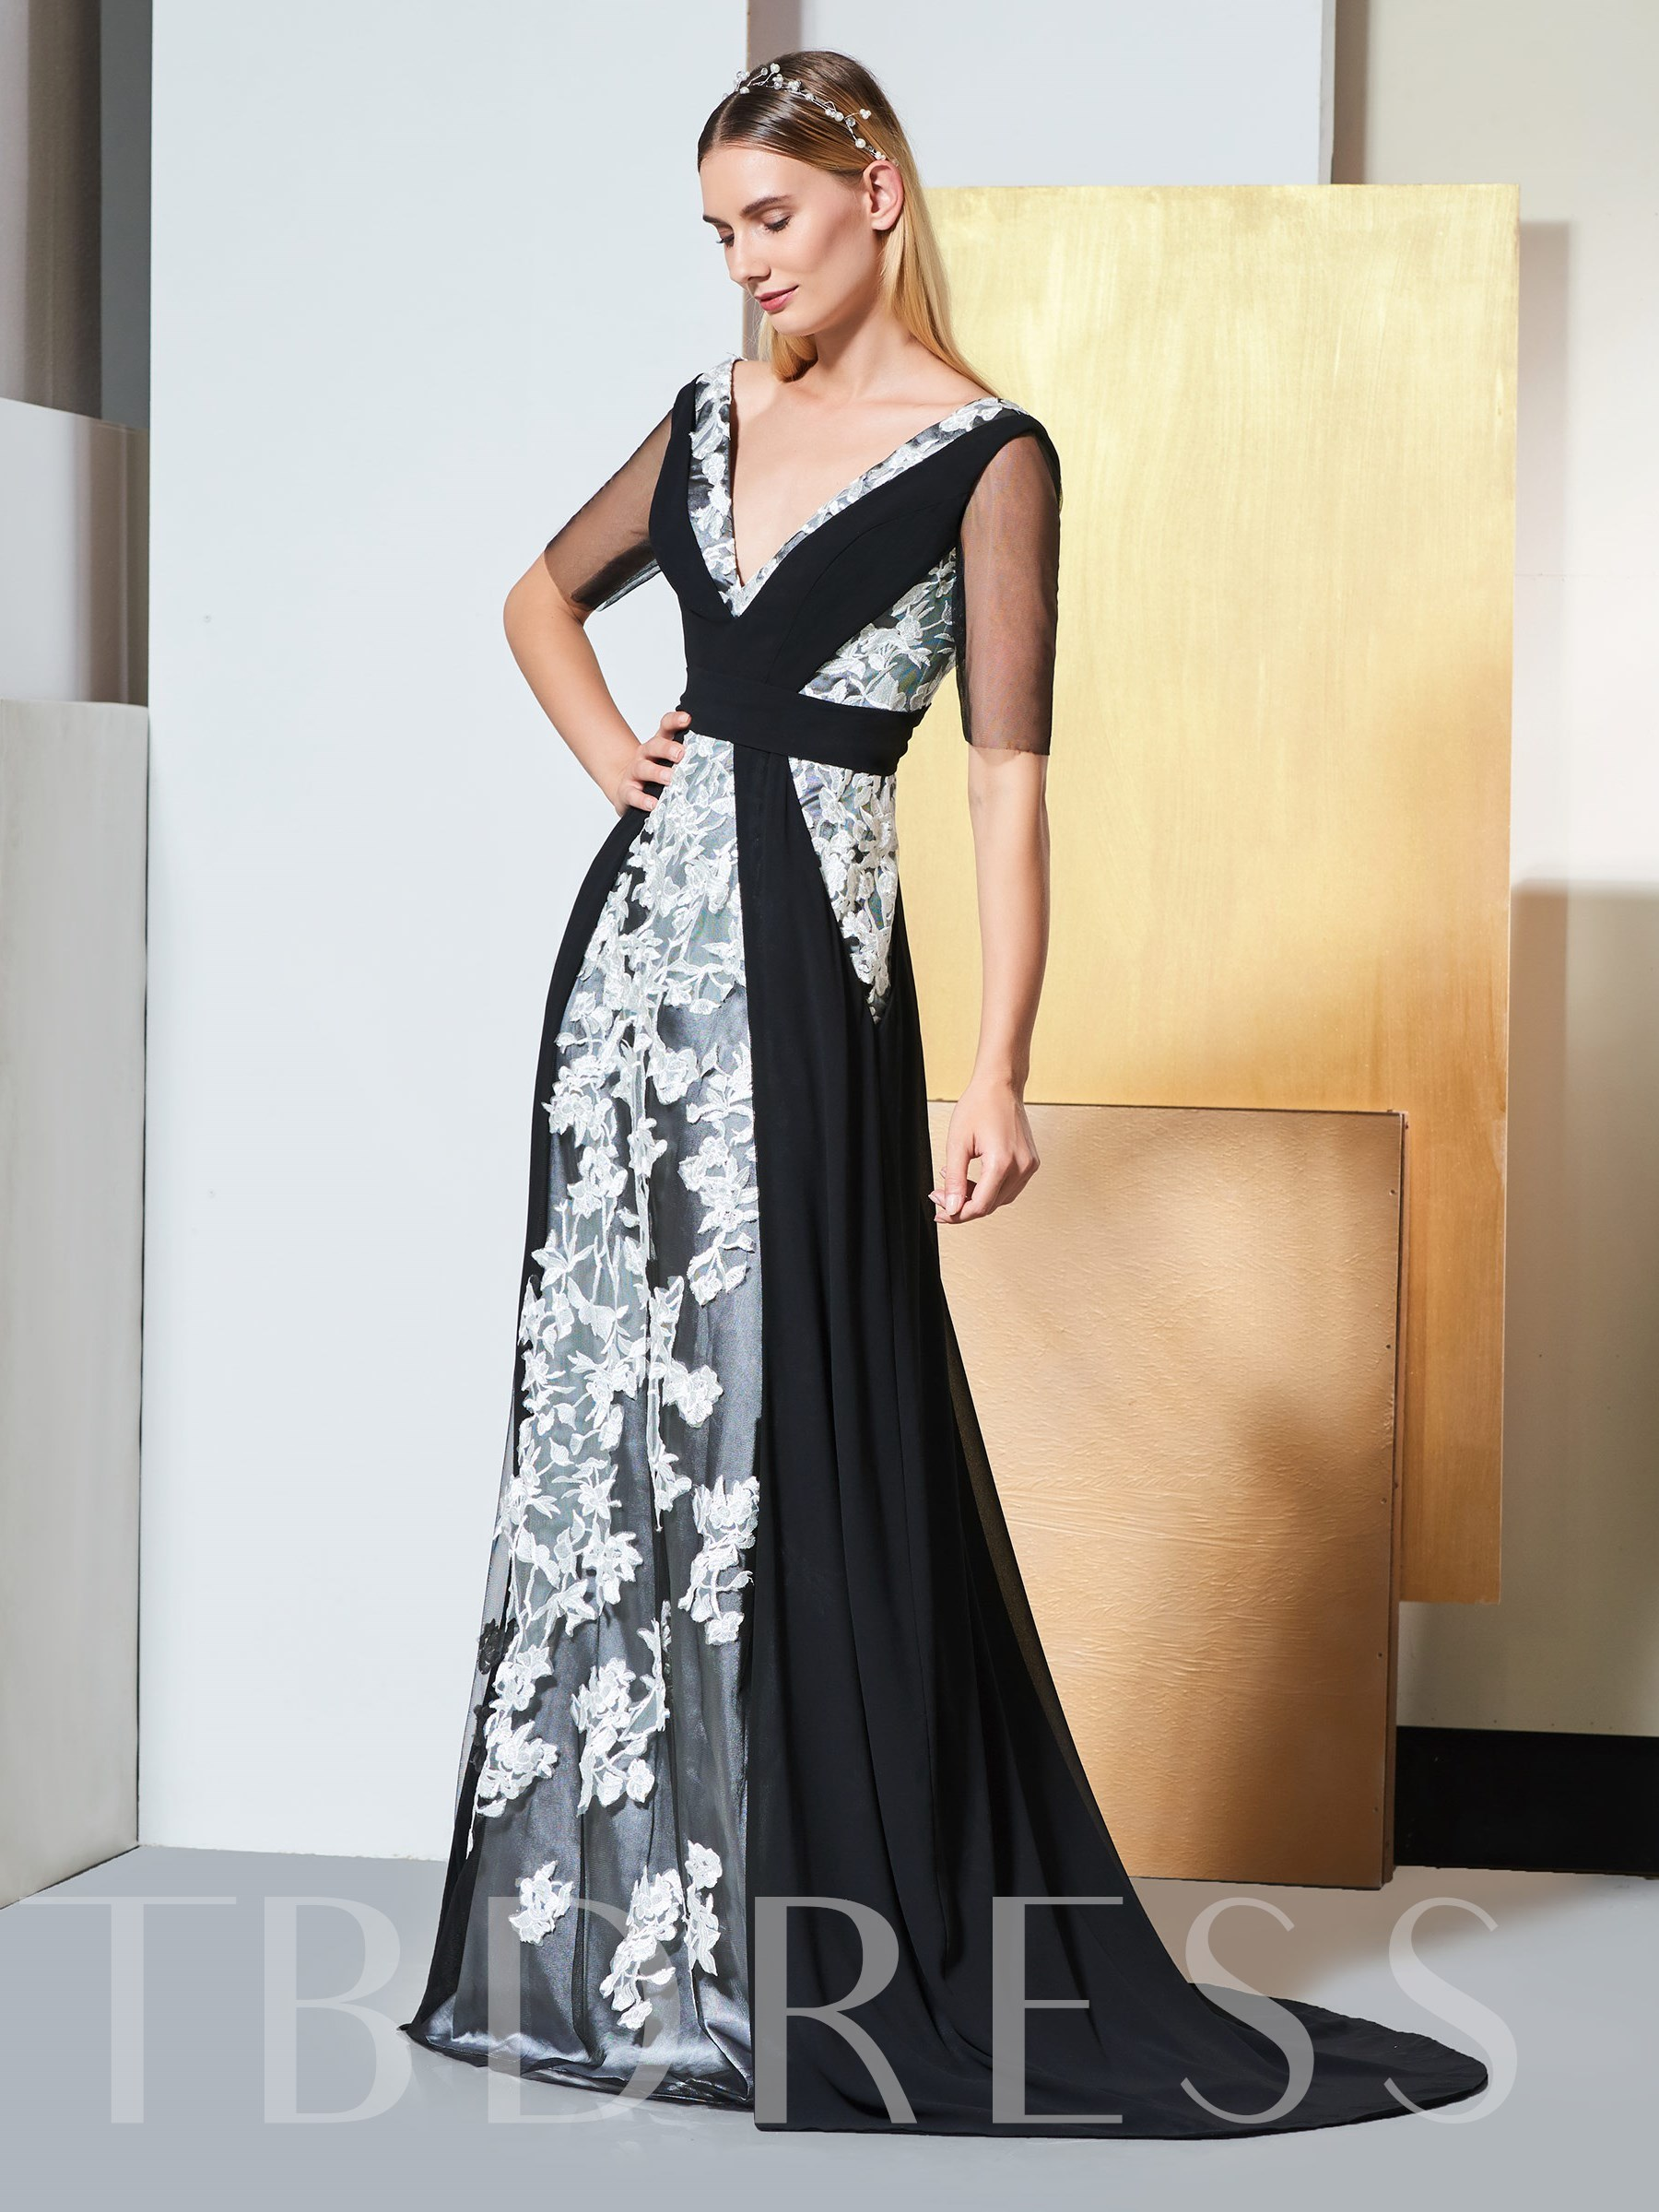 Buy A-Line V-Neck Appliques Half Sleeves Evening Dress, Spring,Summer,Fall,Winter, 13334953 for $153.29 in TBDress store